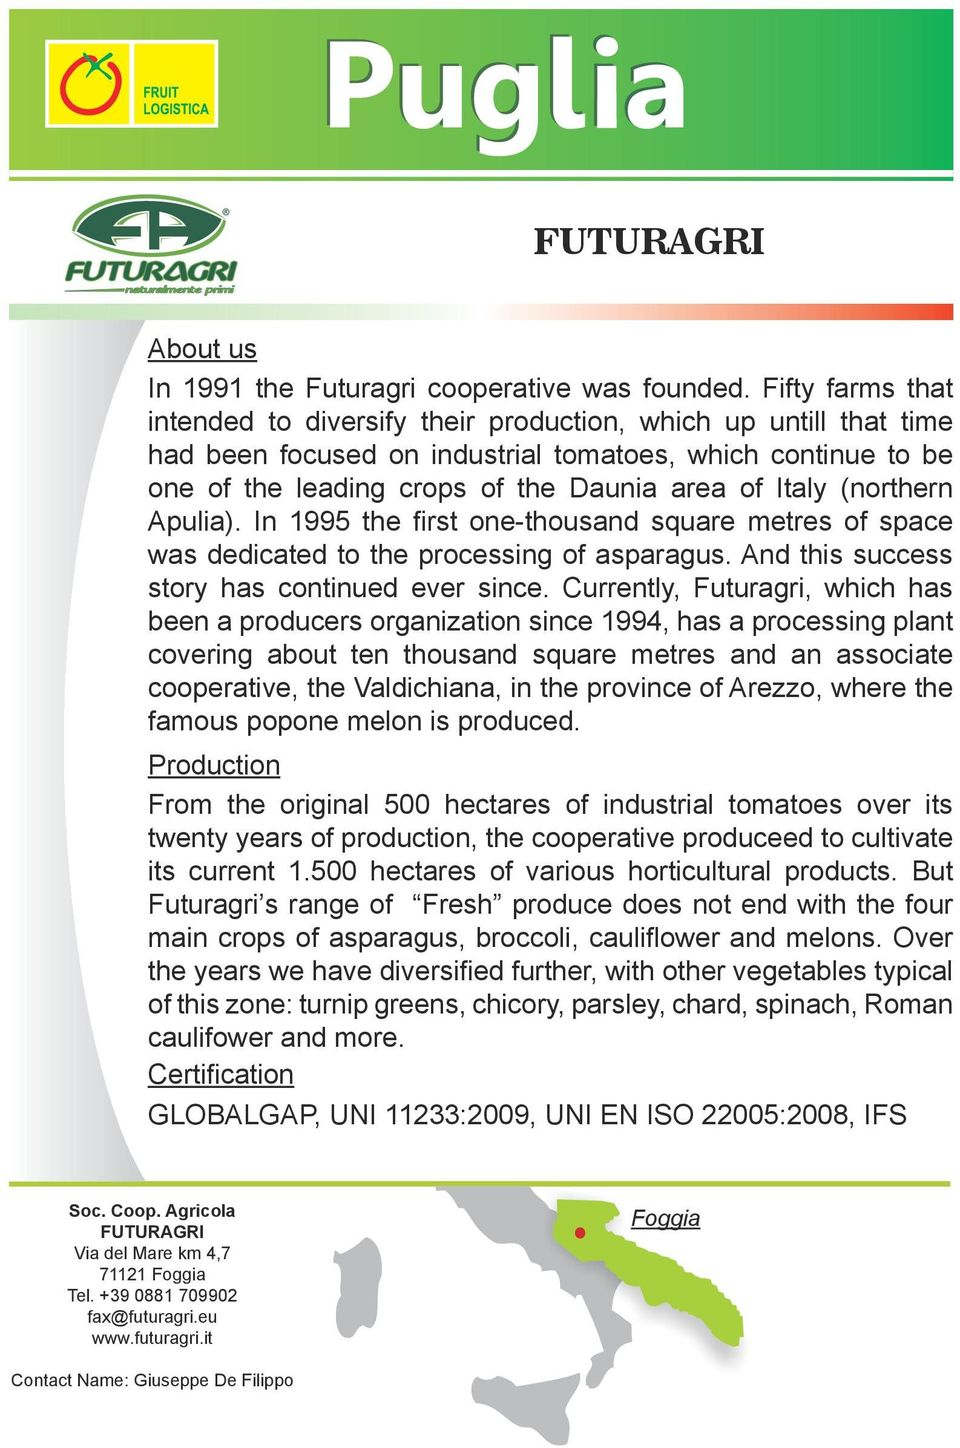 (northern Apulia). In 1995 the first one-thousand square metres of space was dedicated to the processing of asparagus. And this success story has continued ever since.